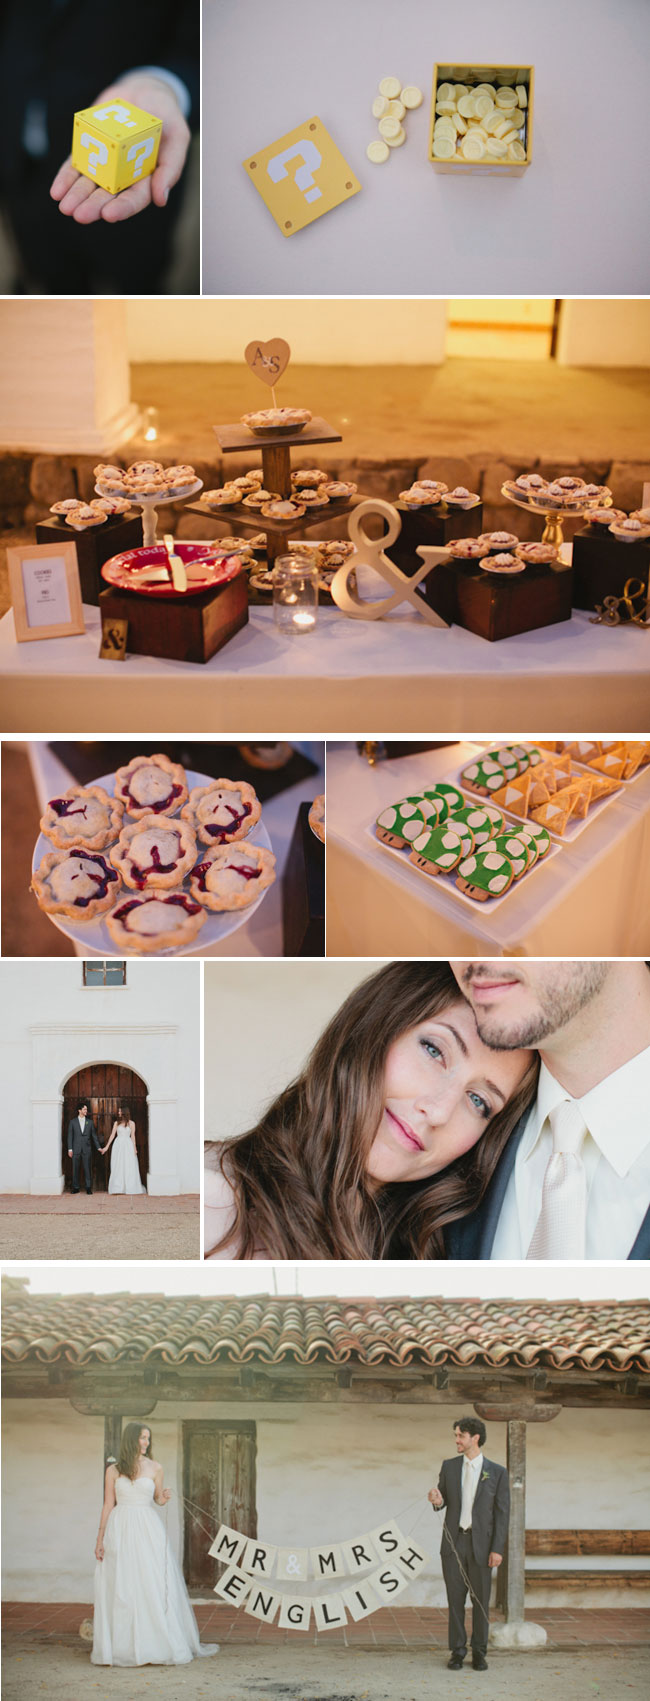 Video Game Themed Wedding - Dessert table, super mario bros cookies